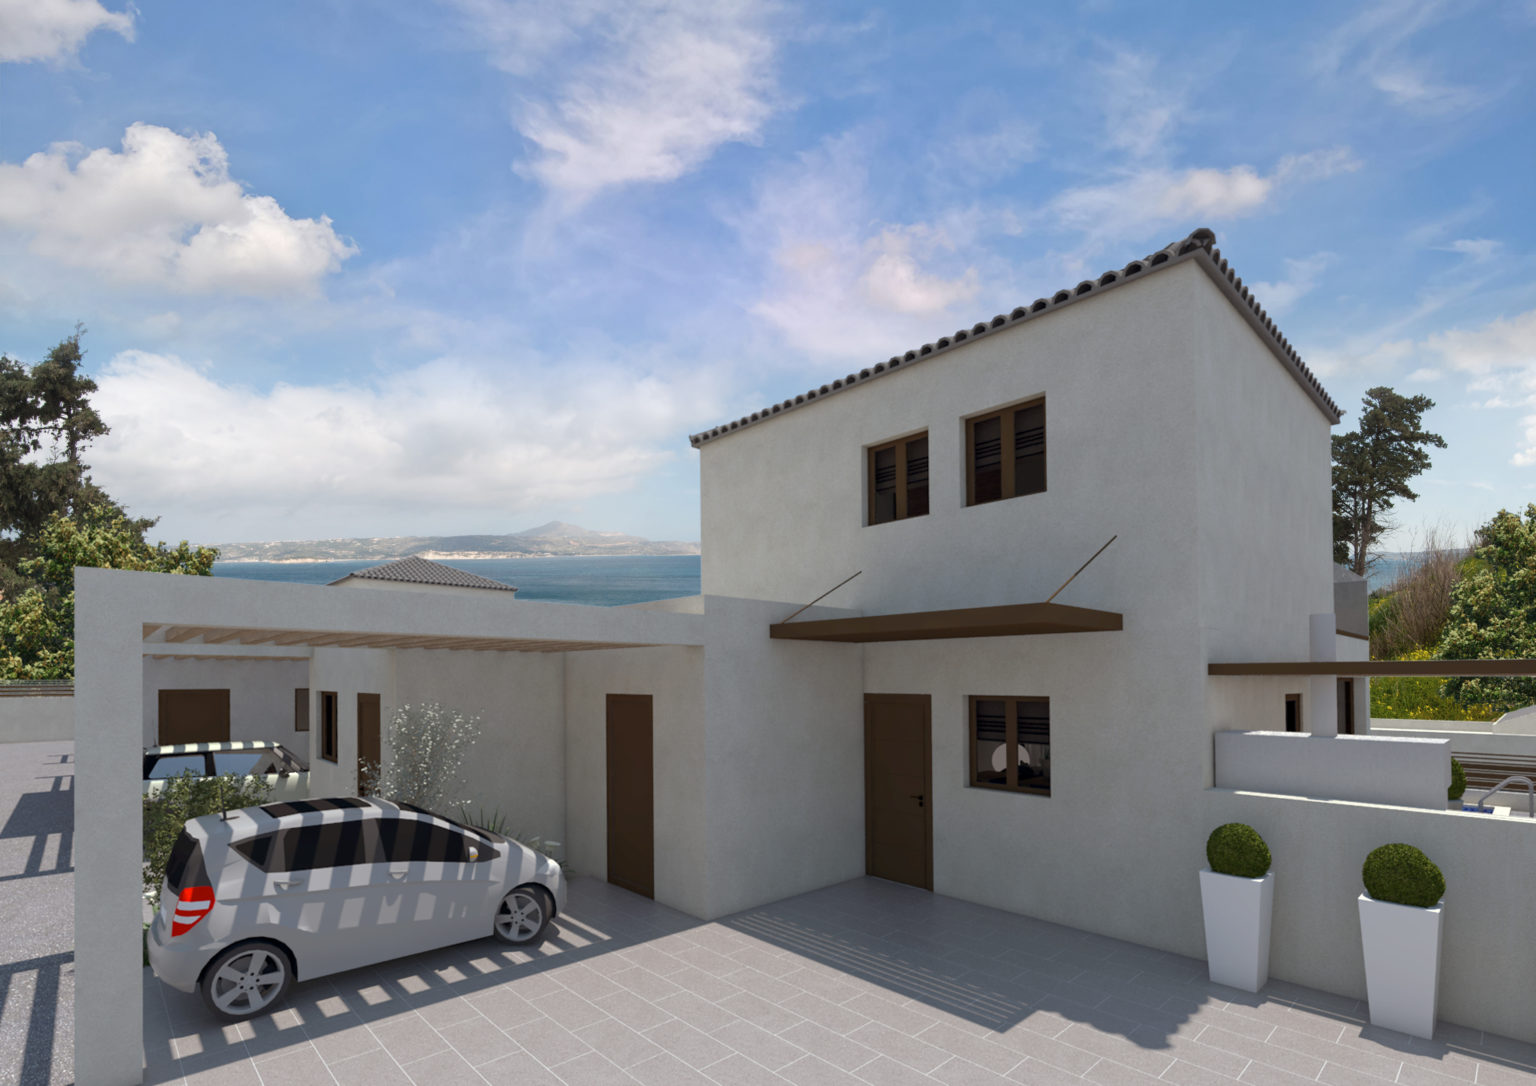 complex and villa for sale in kalives- Parking and exterior view